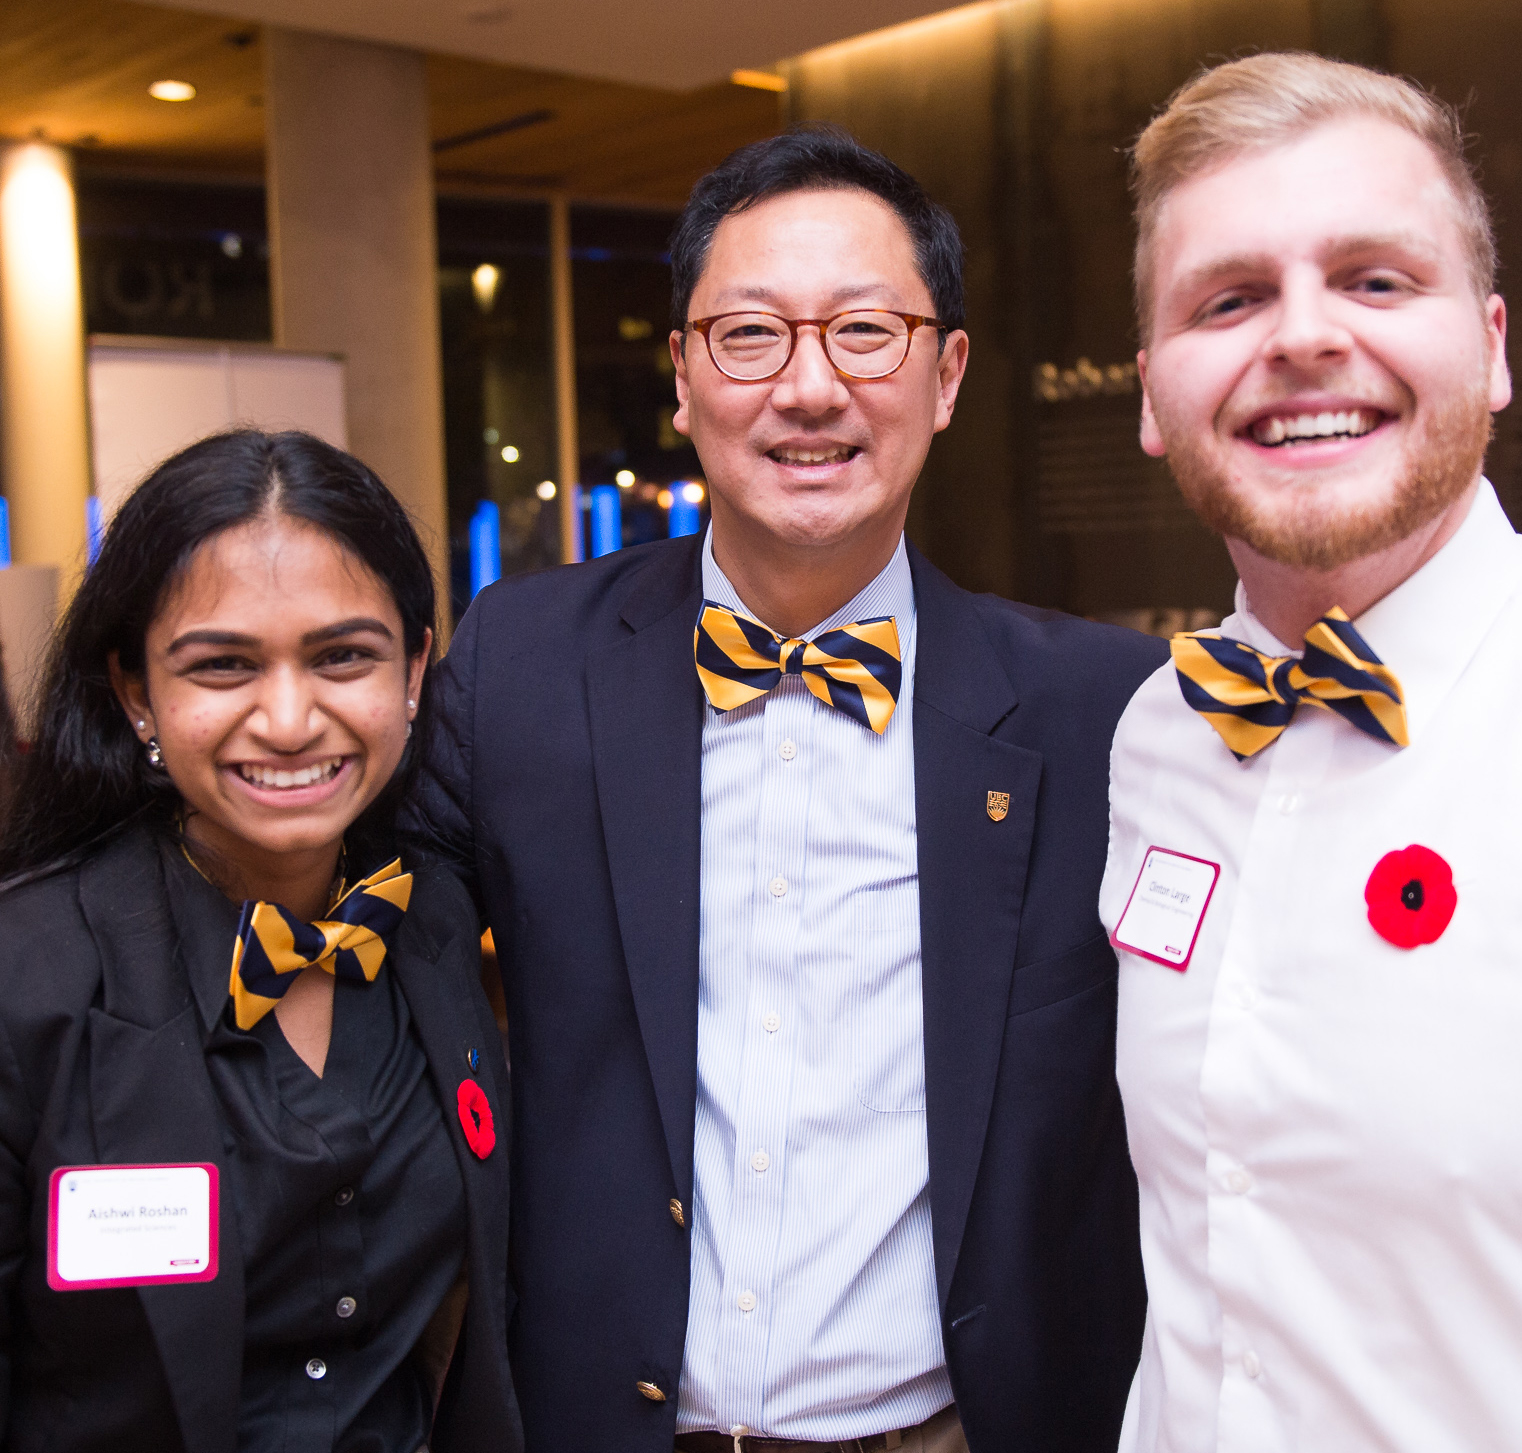 UBC President Santa J. Ono with two UBC students, wearing blue and gold bowties, at the Donor Night Nov 9, 2016